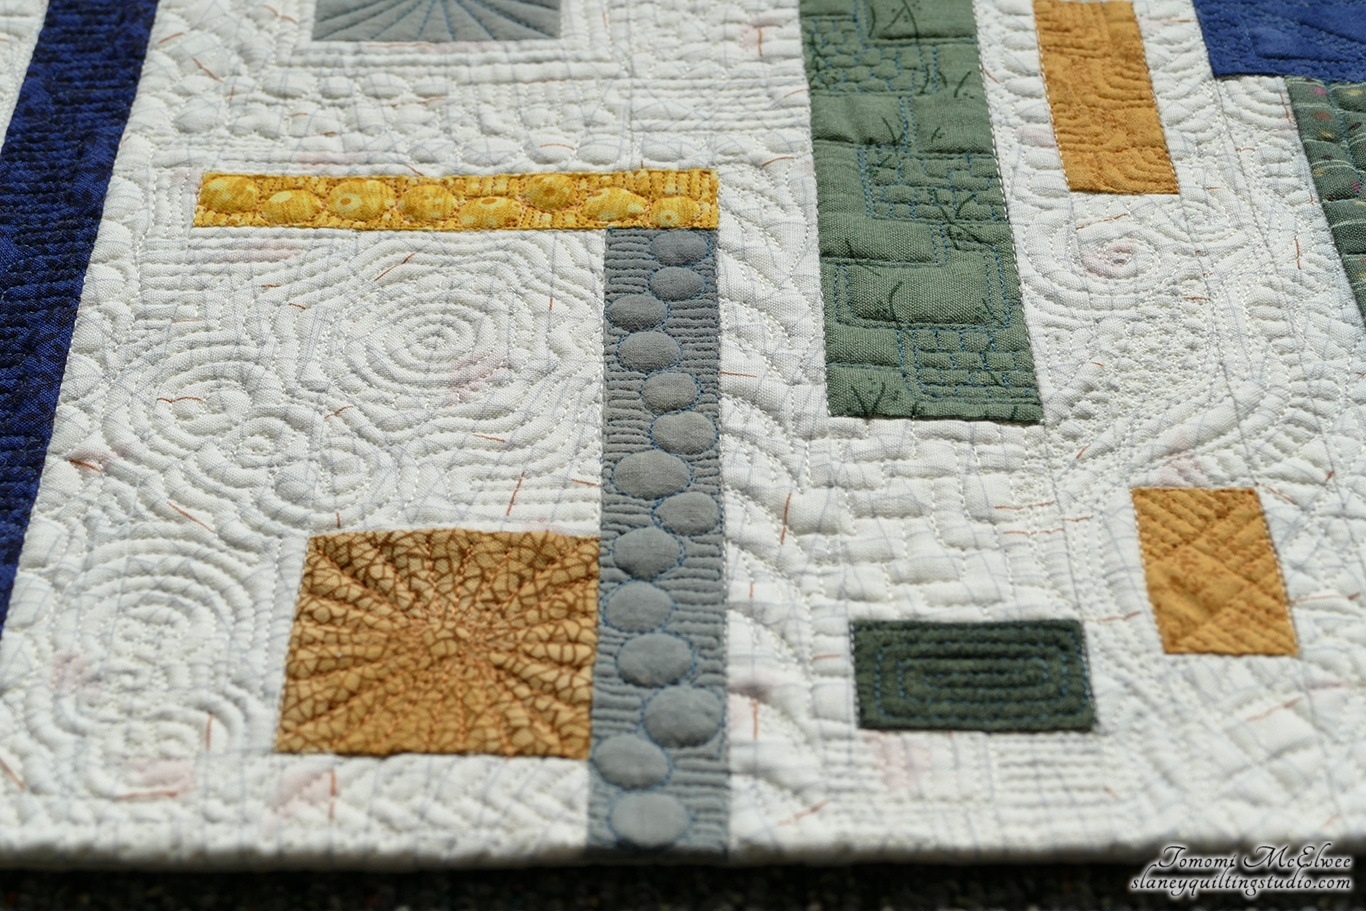 https://slaneyquiltingstudio.com/wp-content/uploads/2019/01/neibourhood-quilting-01.jpg